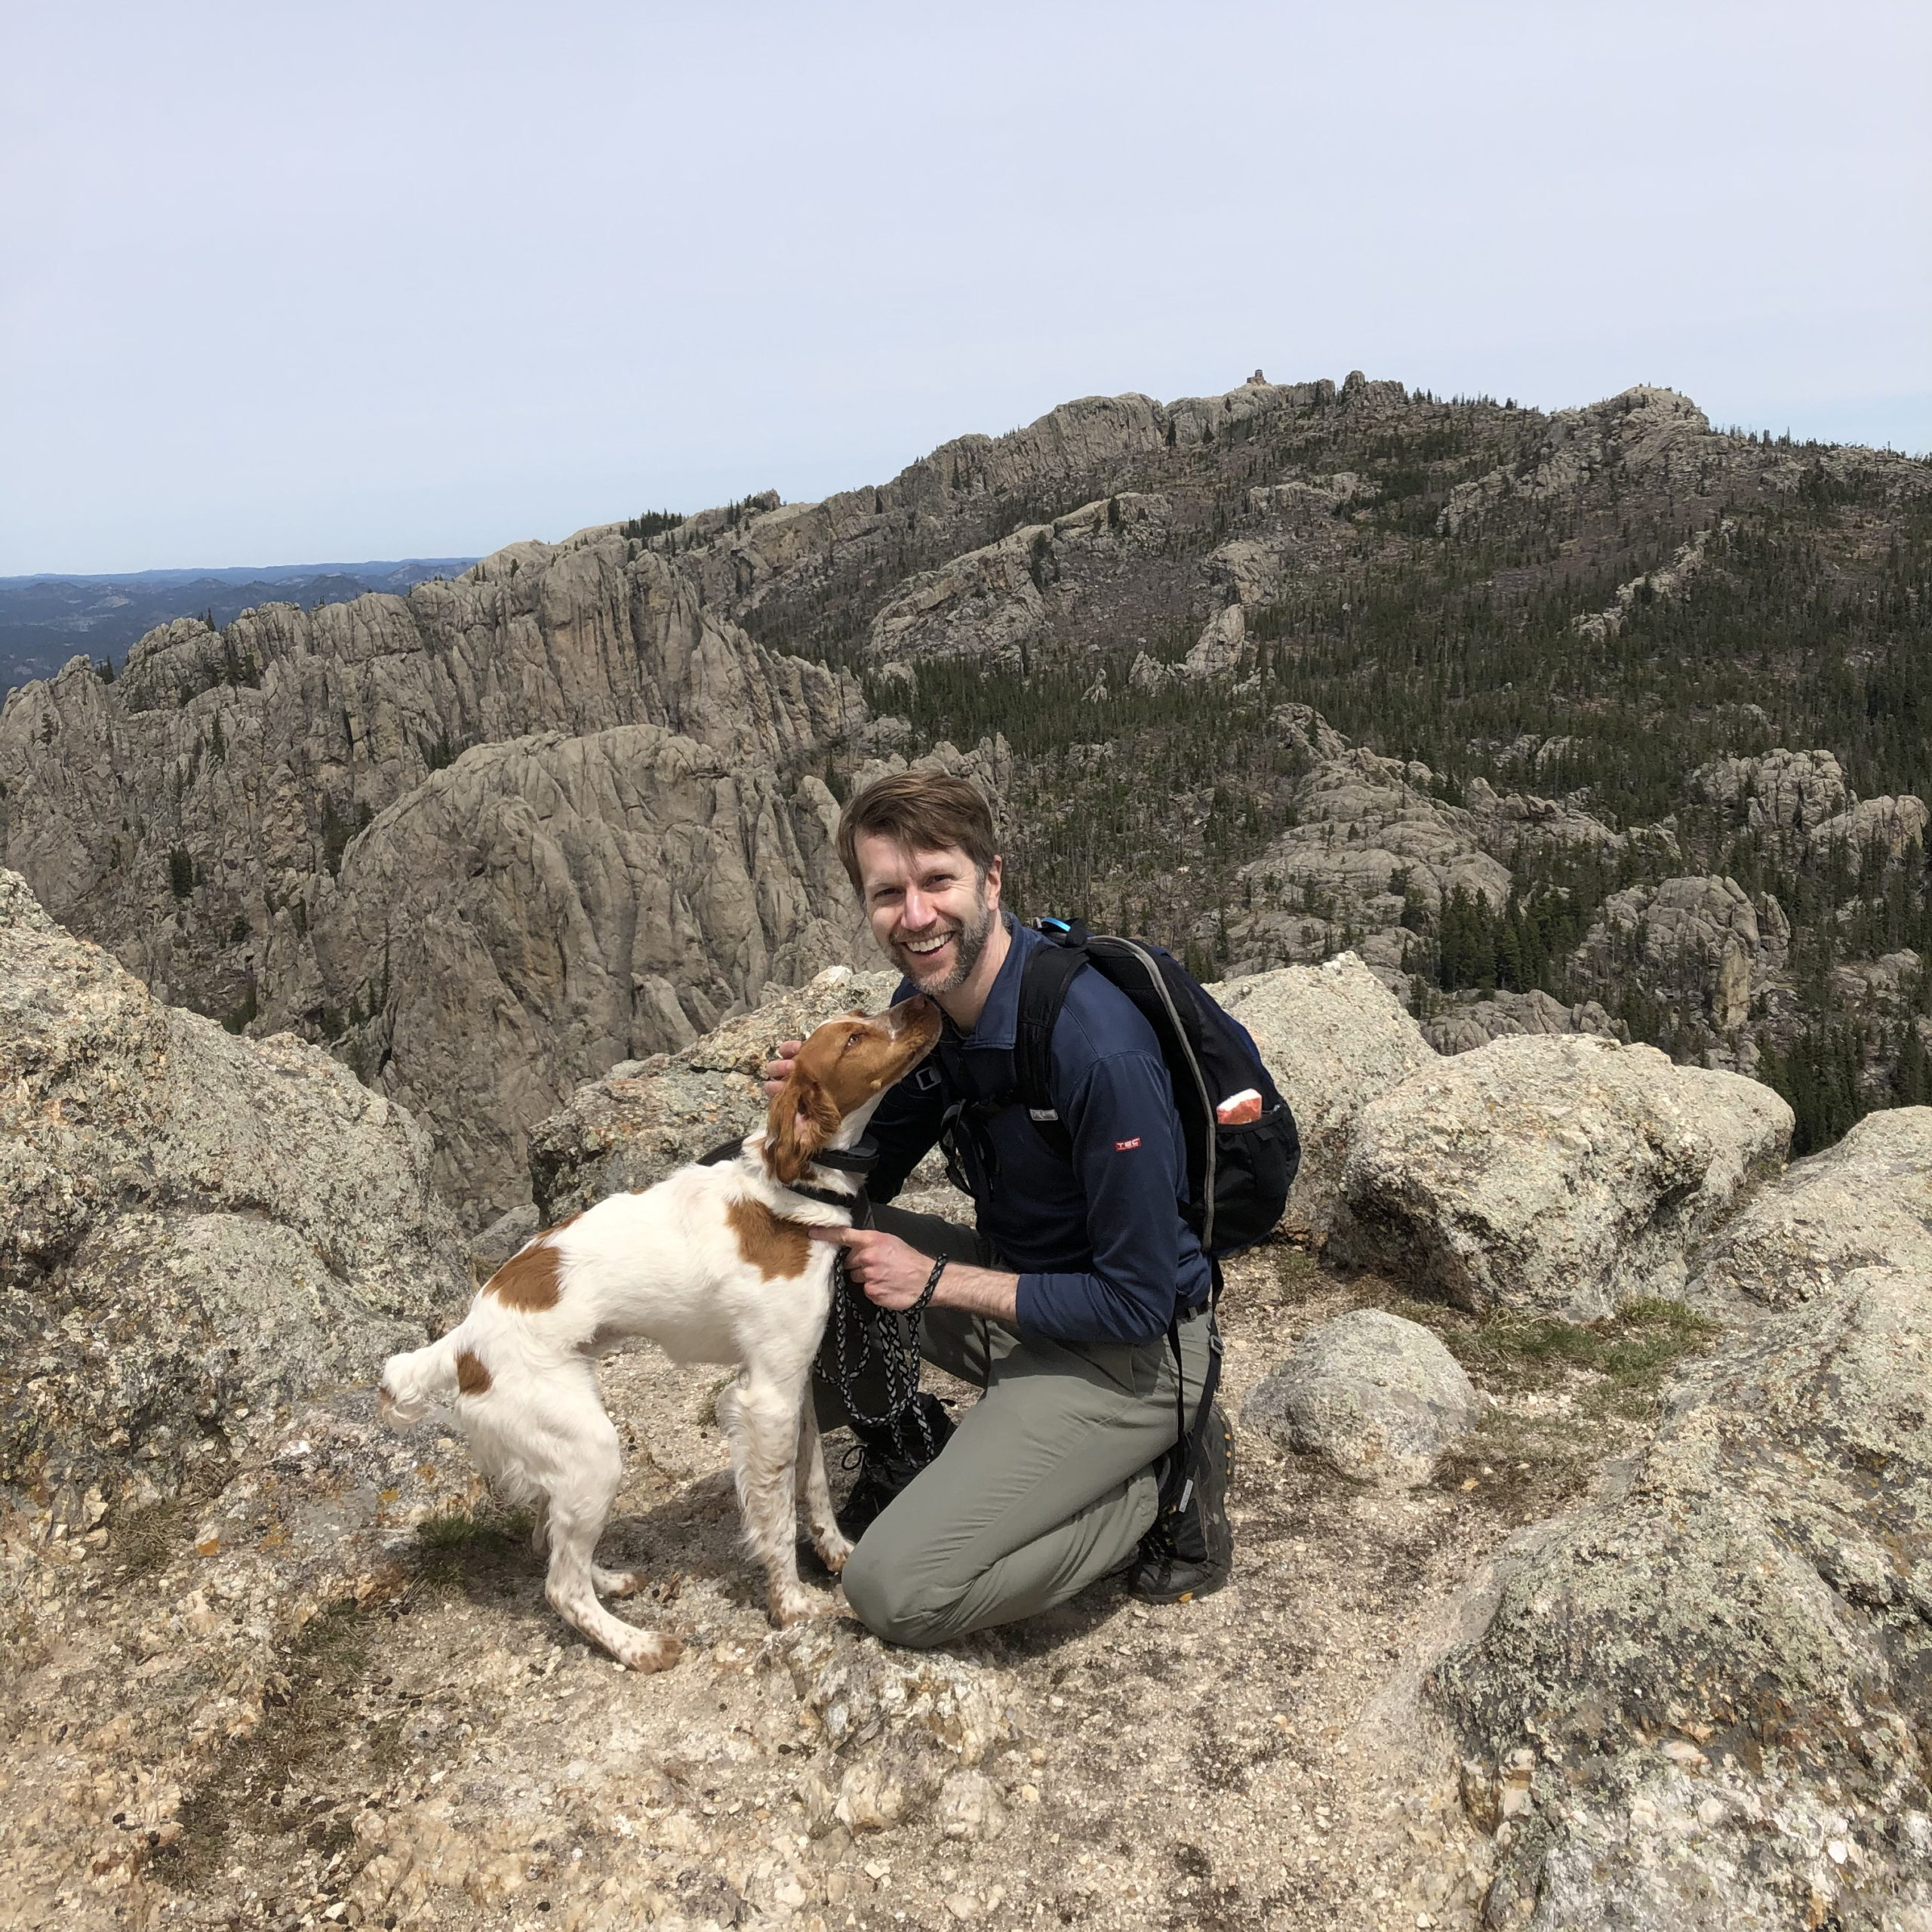 Ken petting Mae, a Brittany Spaniel dog, atop a mountain